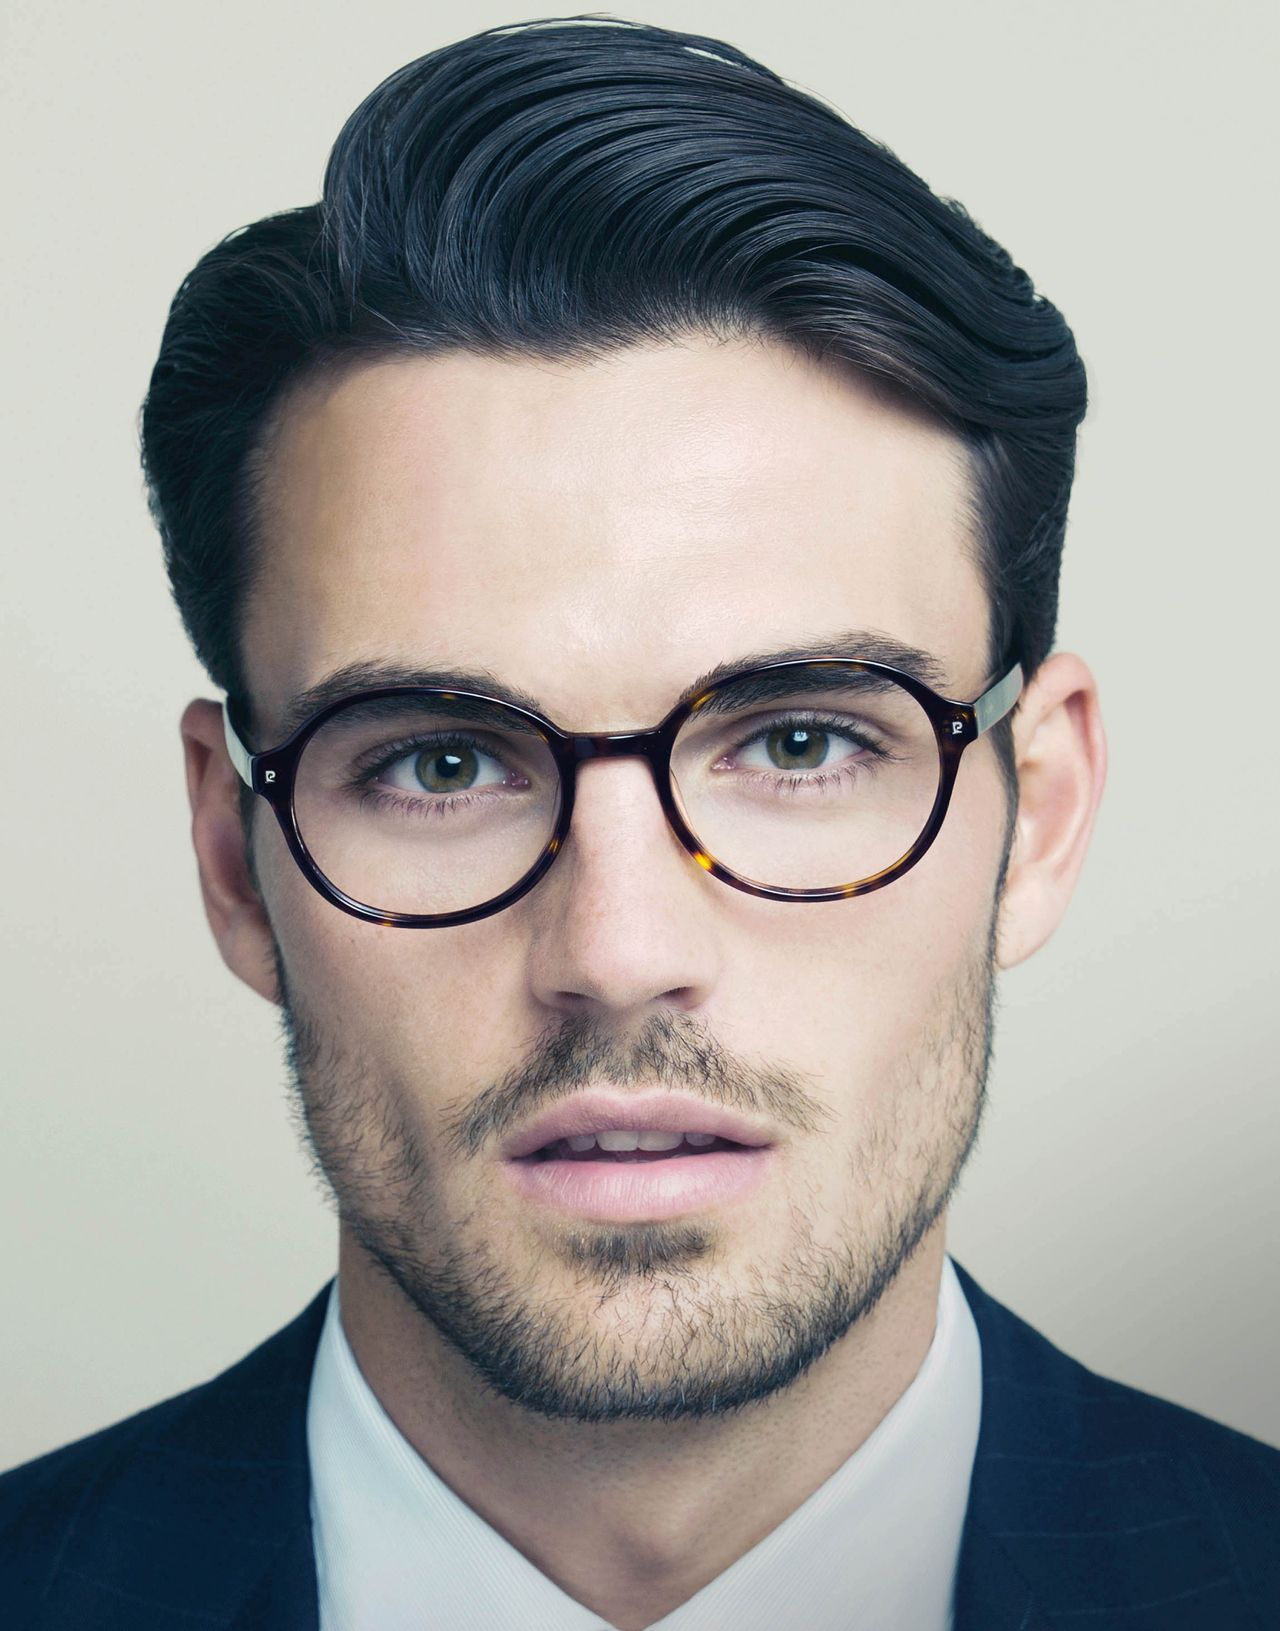 hipster haircut for men 2015 | pierre cardin, glass and haircuts